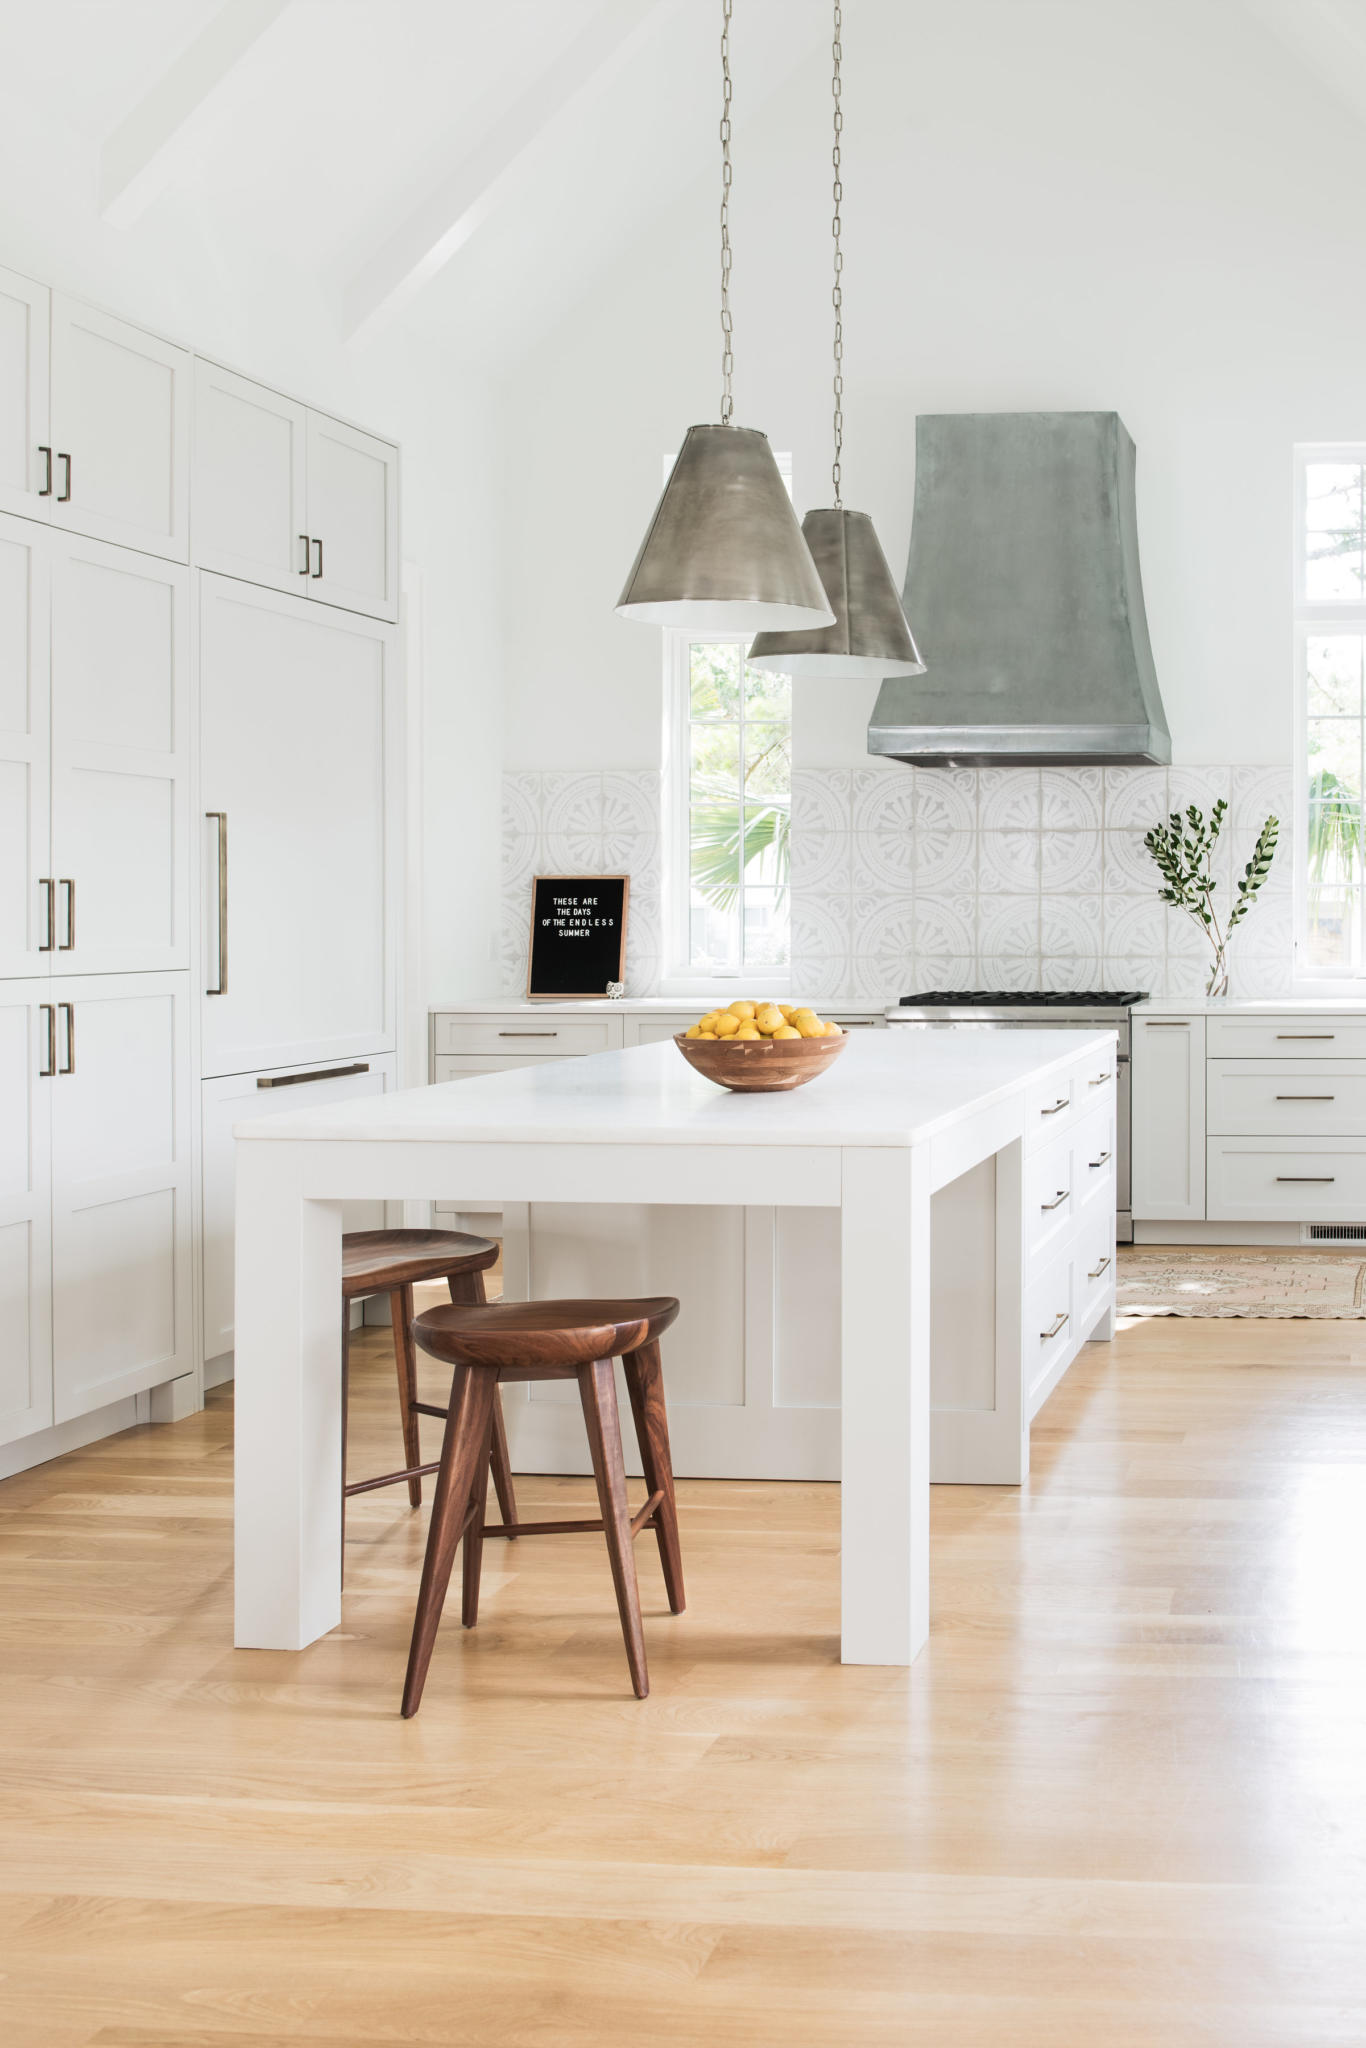 custom kitchen by Madigan Projects